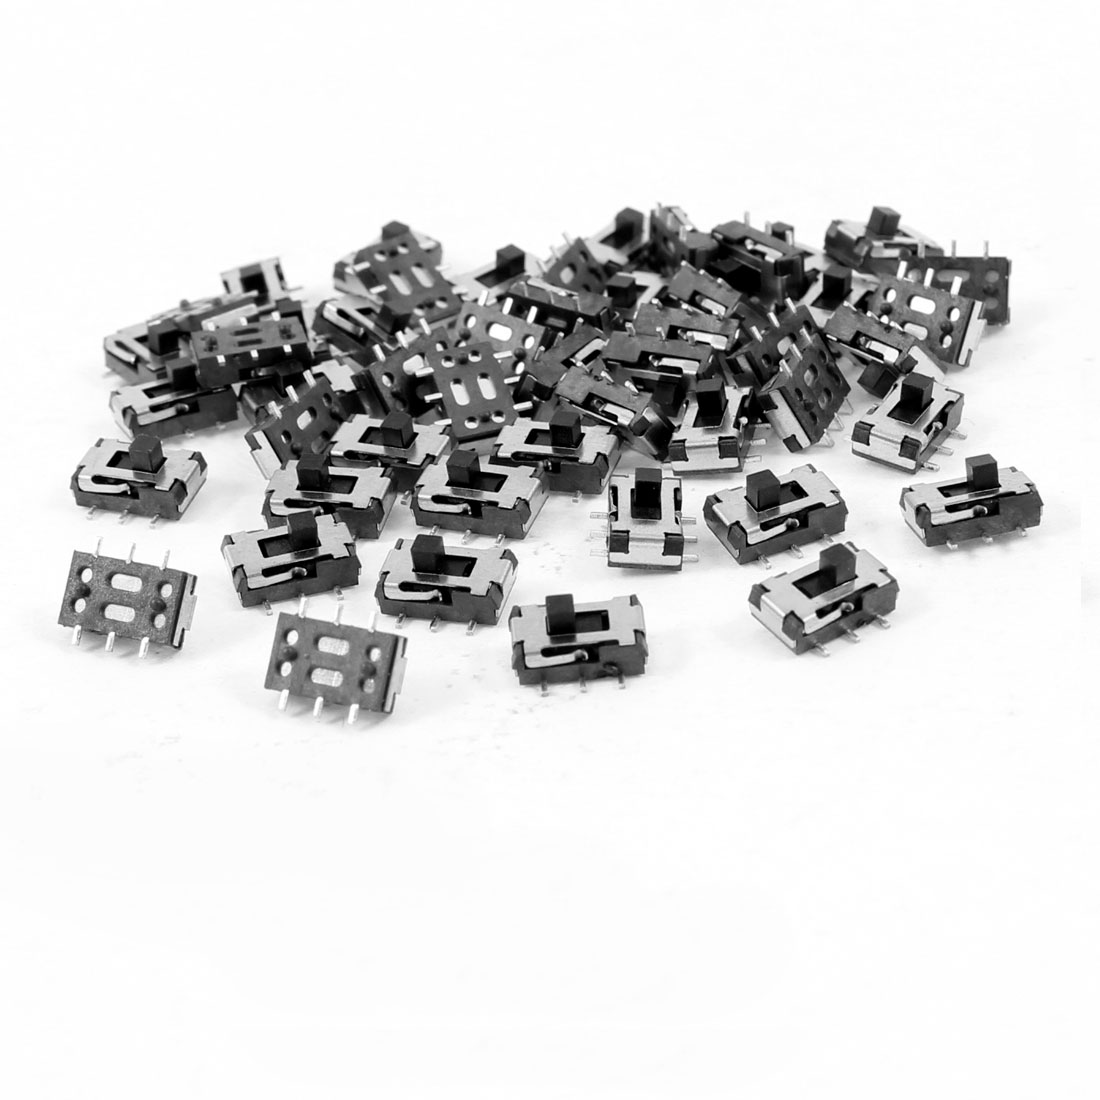 50 Pcs 7x4x2mm On/Off/On DPDT 2P2T 6 Pin Vertical Mini SMD SMT Slide Switch